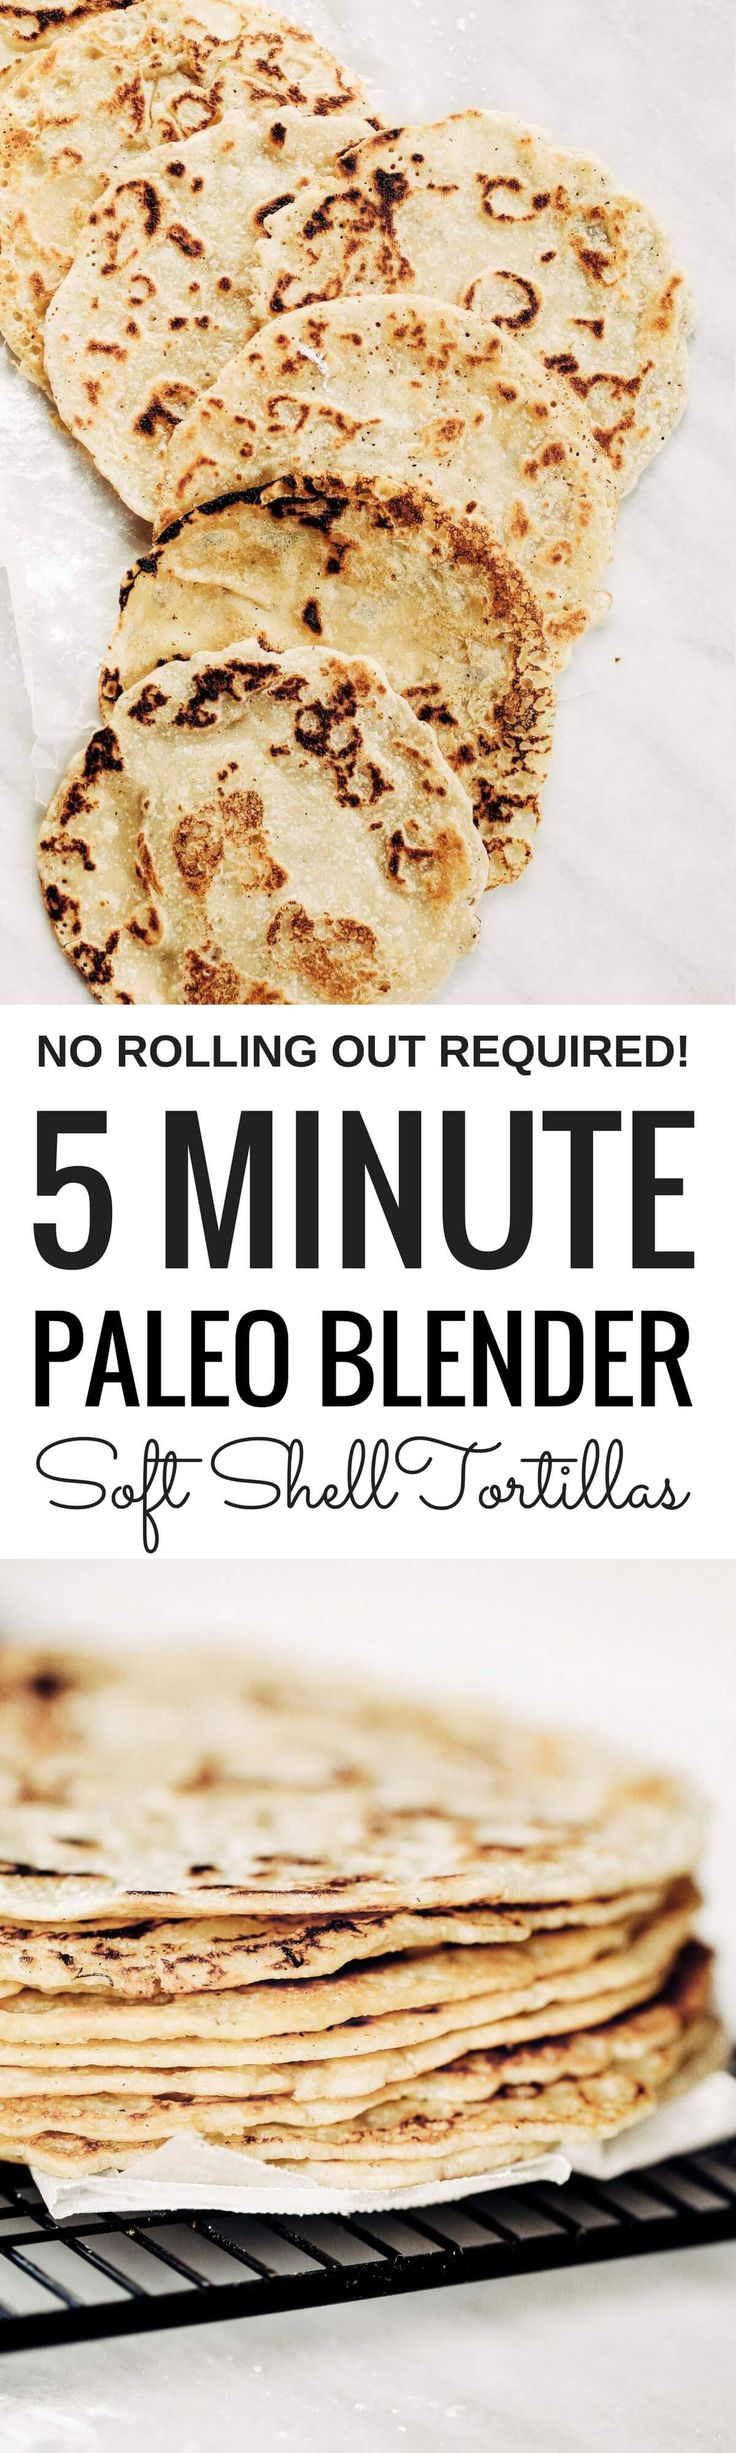 Best ever soft shell paleo tortillas made in five minutes! No rolling out required. Make these soft gluten free blender by blending almond flour, tapioca flour, avocado oil, and coconut milk in a blender. Pour batter onto a skillet and out comes the most beautiful and tasty grain free tortillas, perfect for taco night or a breakfast burrito! The easiest, most versatile, fool proof, and delicious paleo flour tortillas! Easy gluten free tortilla recipe. best gluten free tortilla recipe. Best…